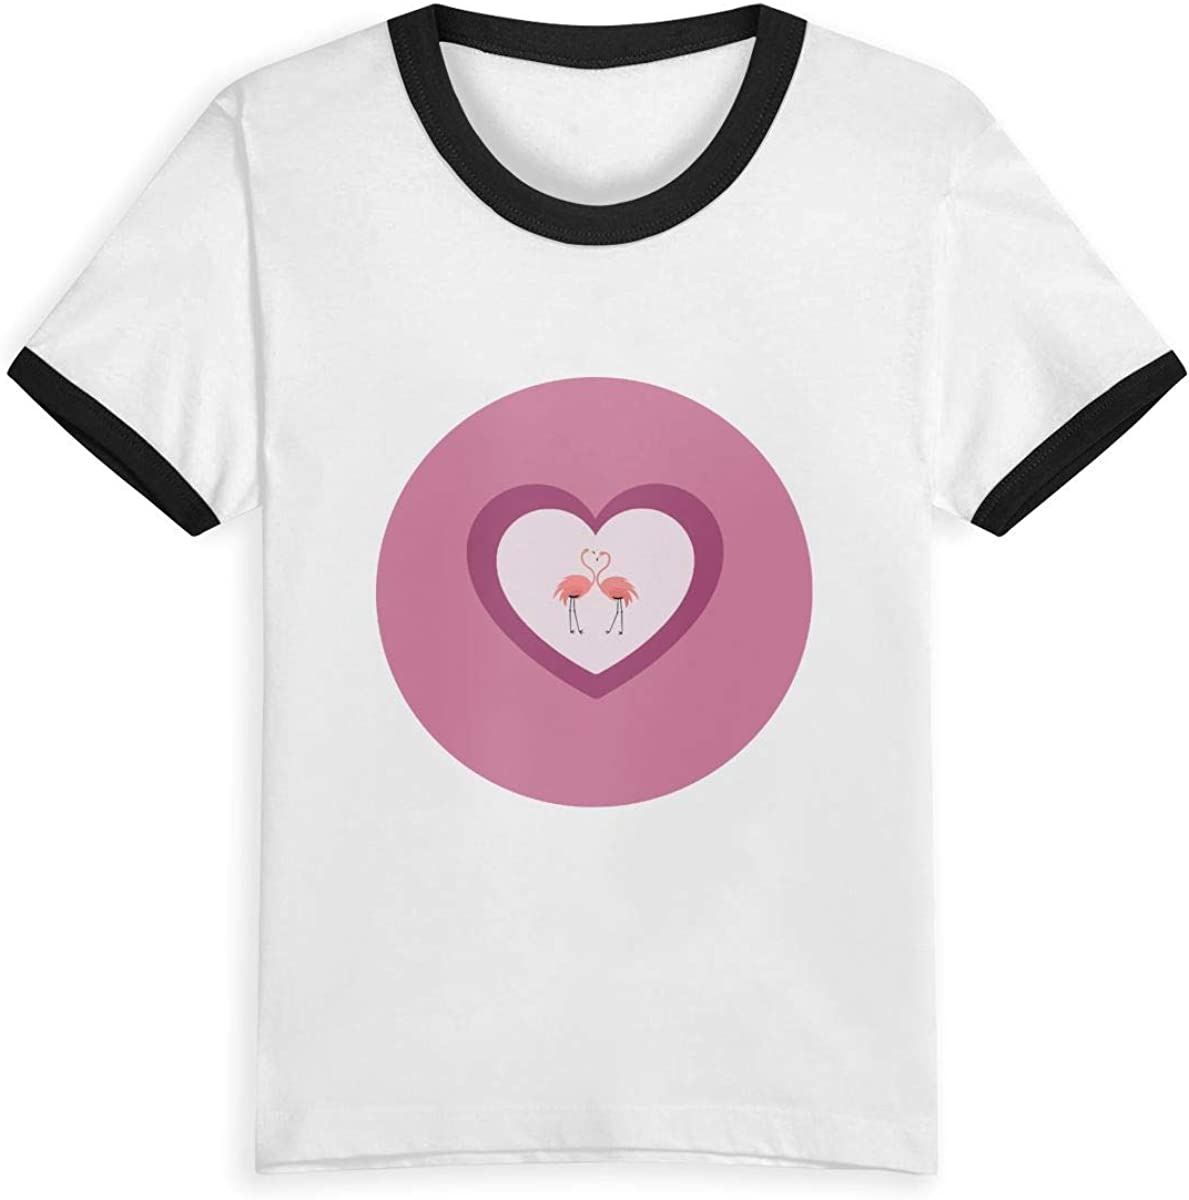 NAHSUX Design Name Childrens T-Shirt for Children Kids Unisex Fashion Cute